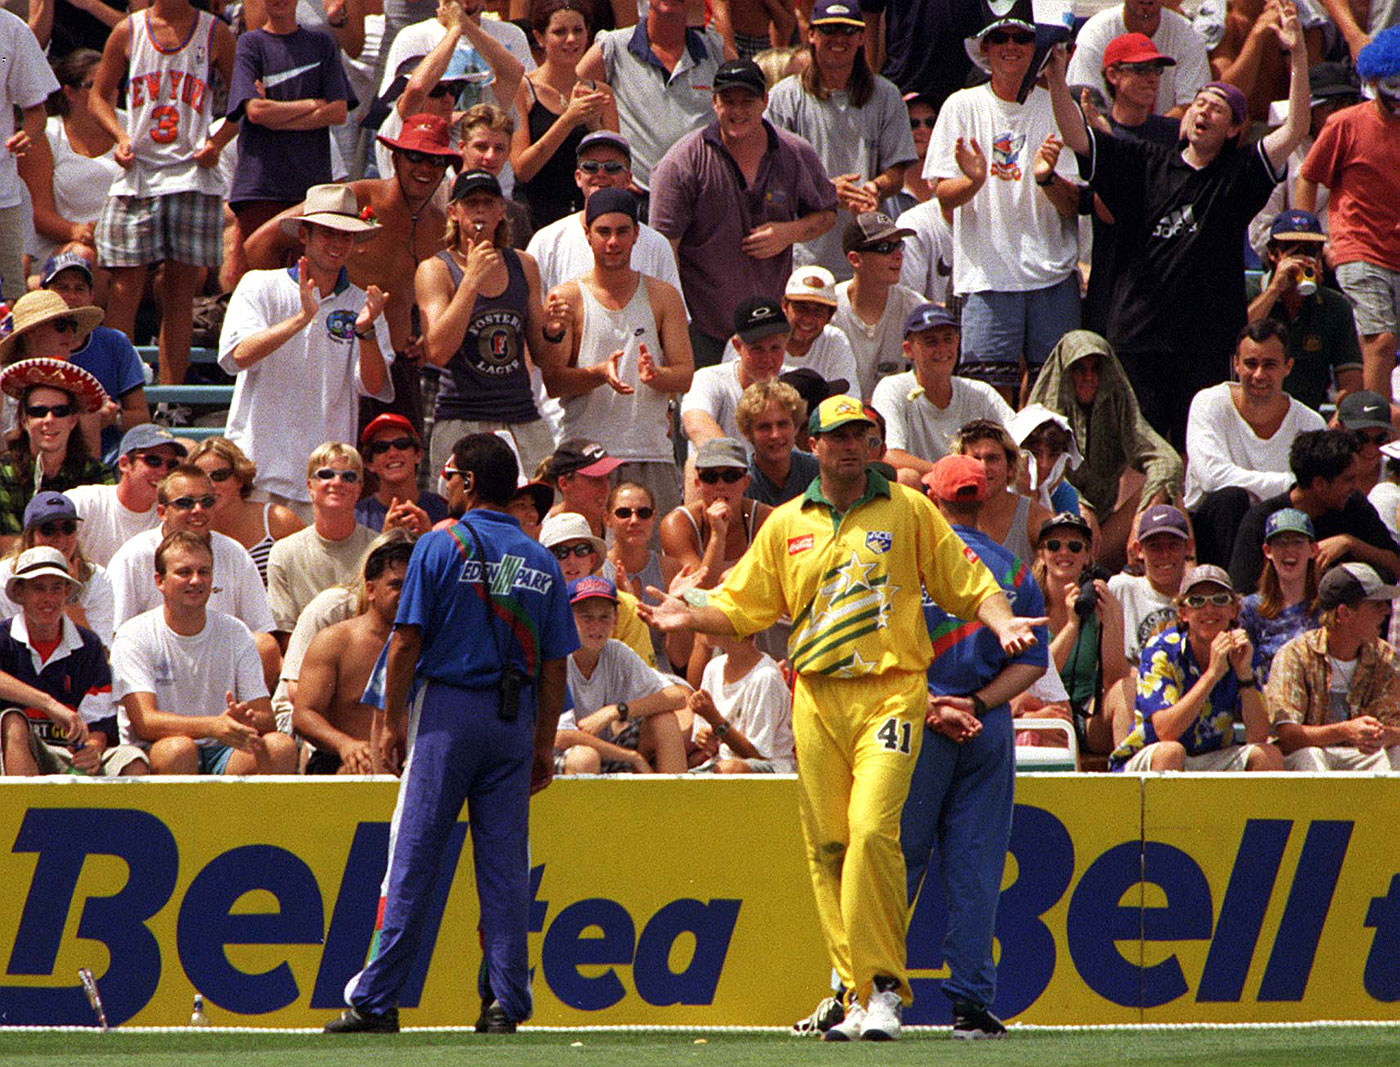 Wilson's ODI career was more noteworthy than his Test one. He picked up 13 wickets in 11 ODIs